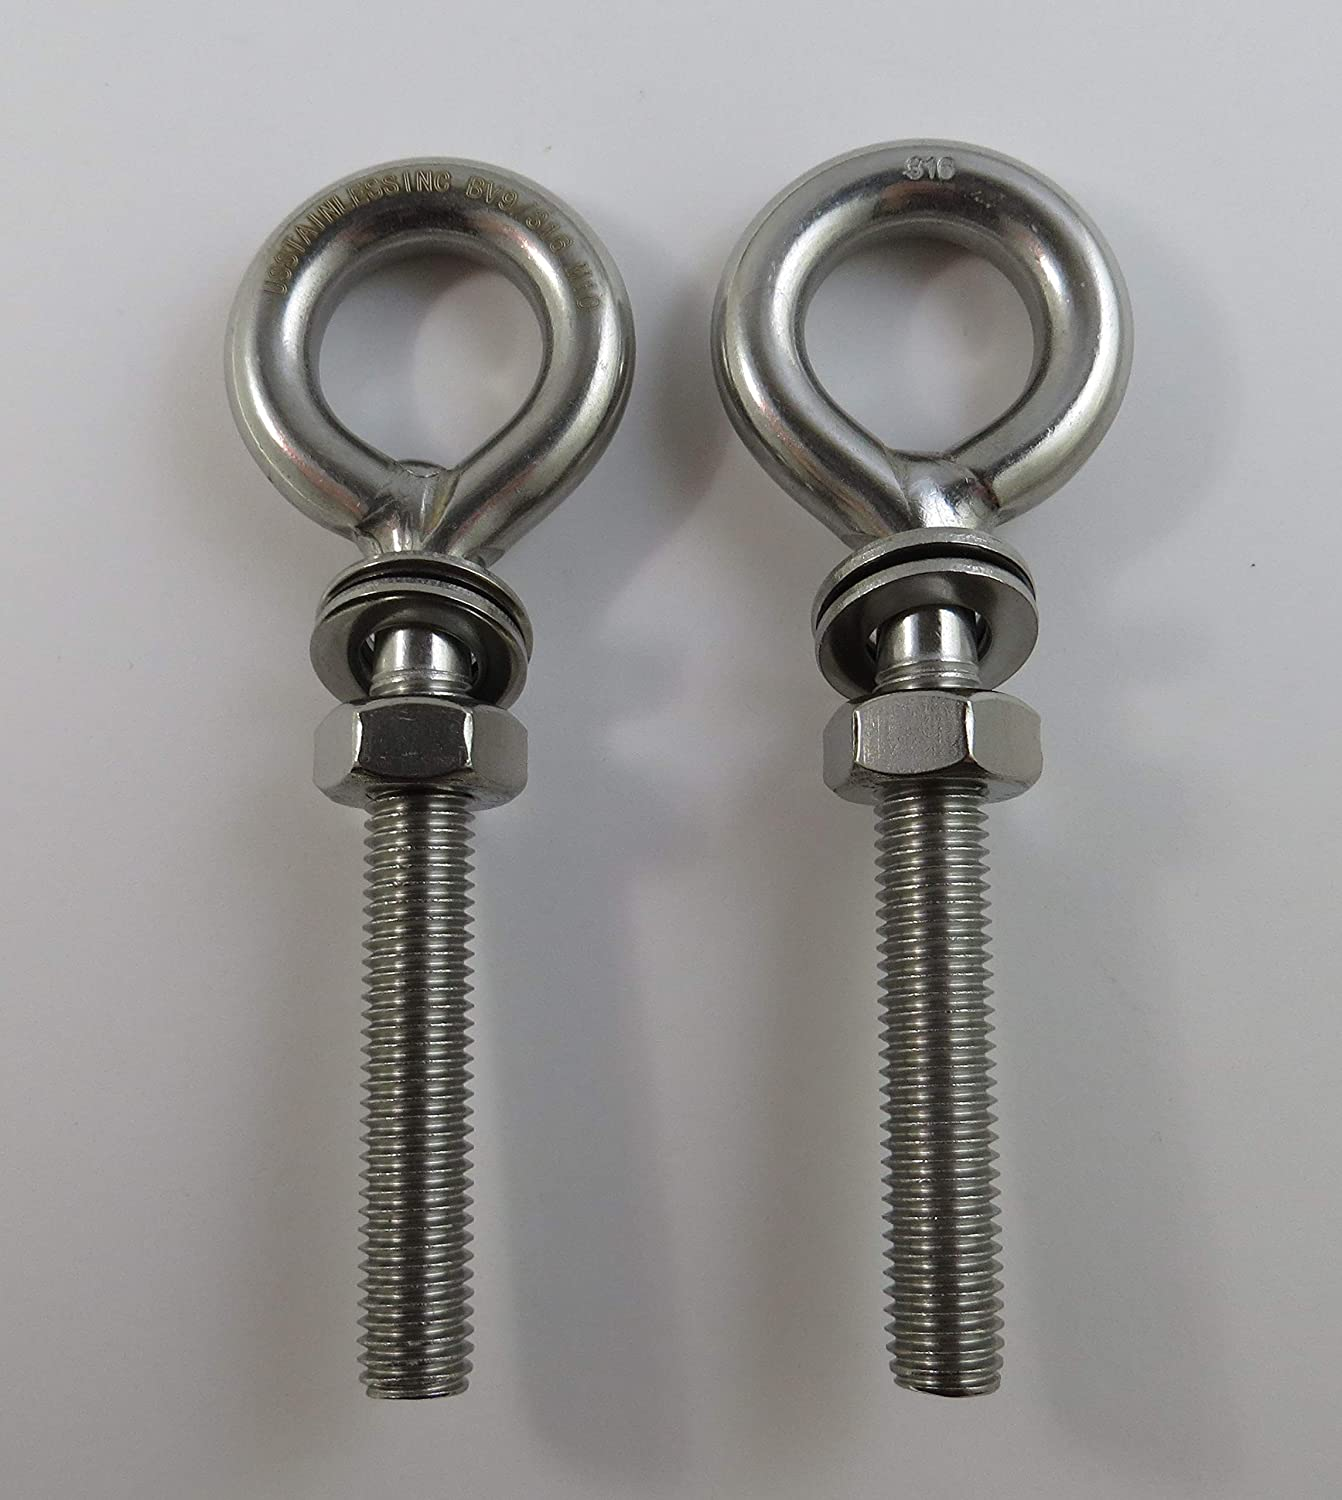 Marine Grade 2 Pieces Stainless Steel 316 M10 Eye Bolt 10mm x 60mm 3//8 x 2 3//8